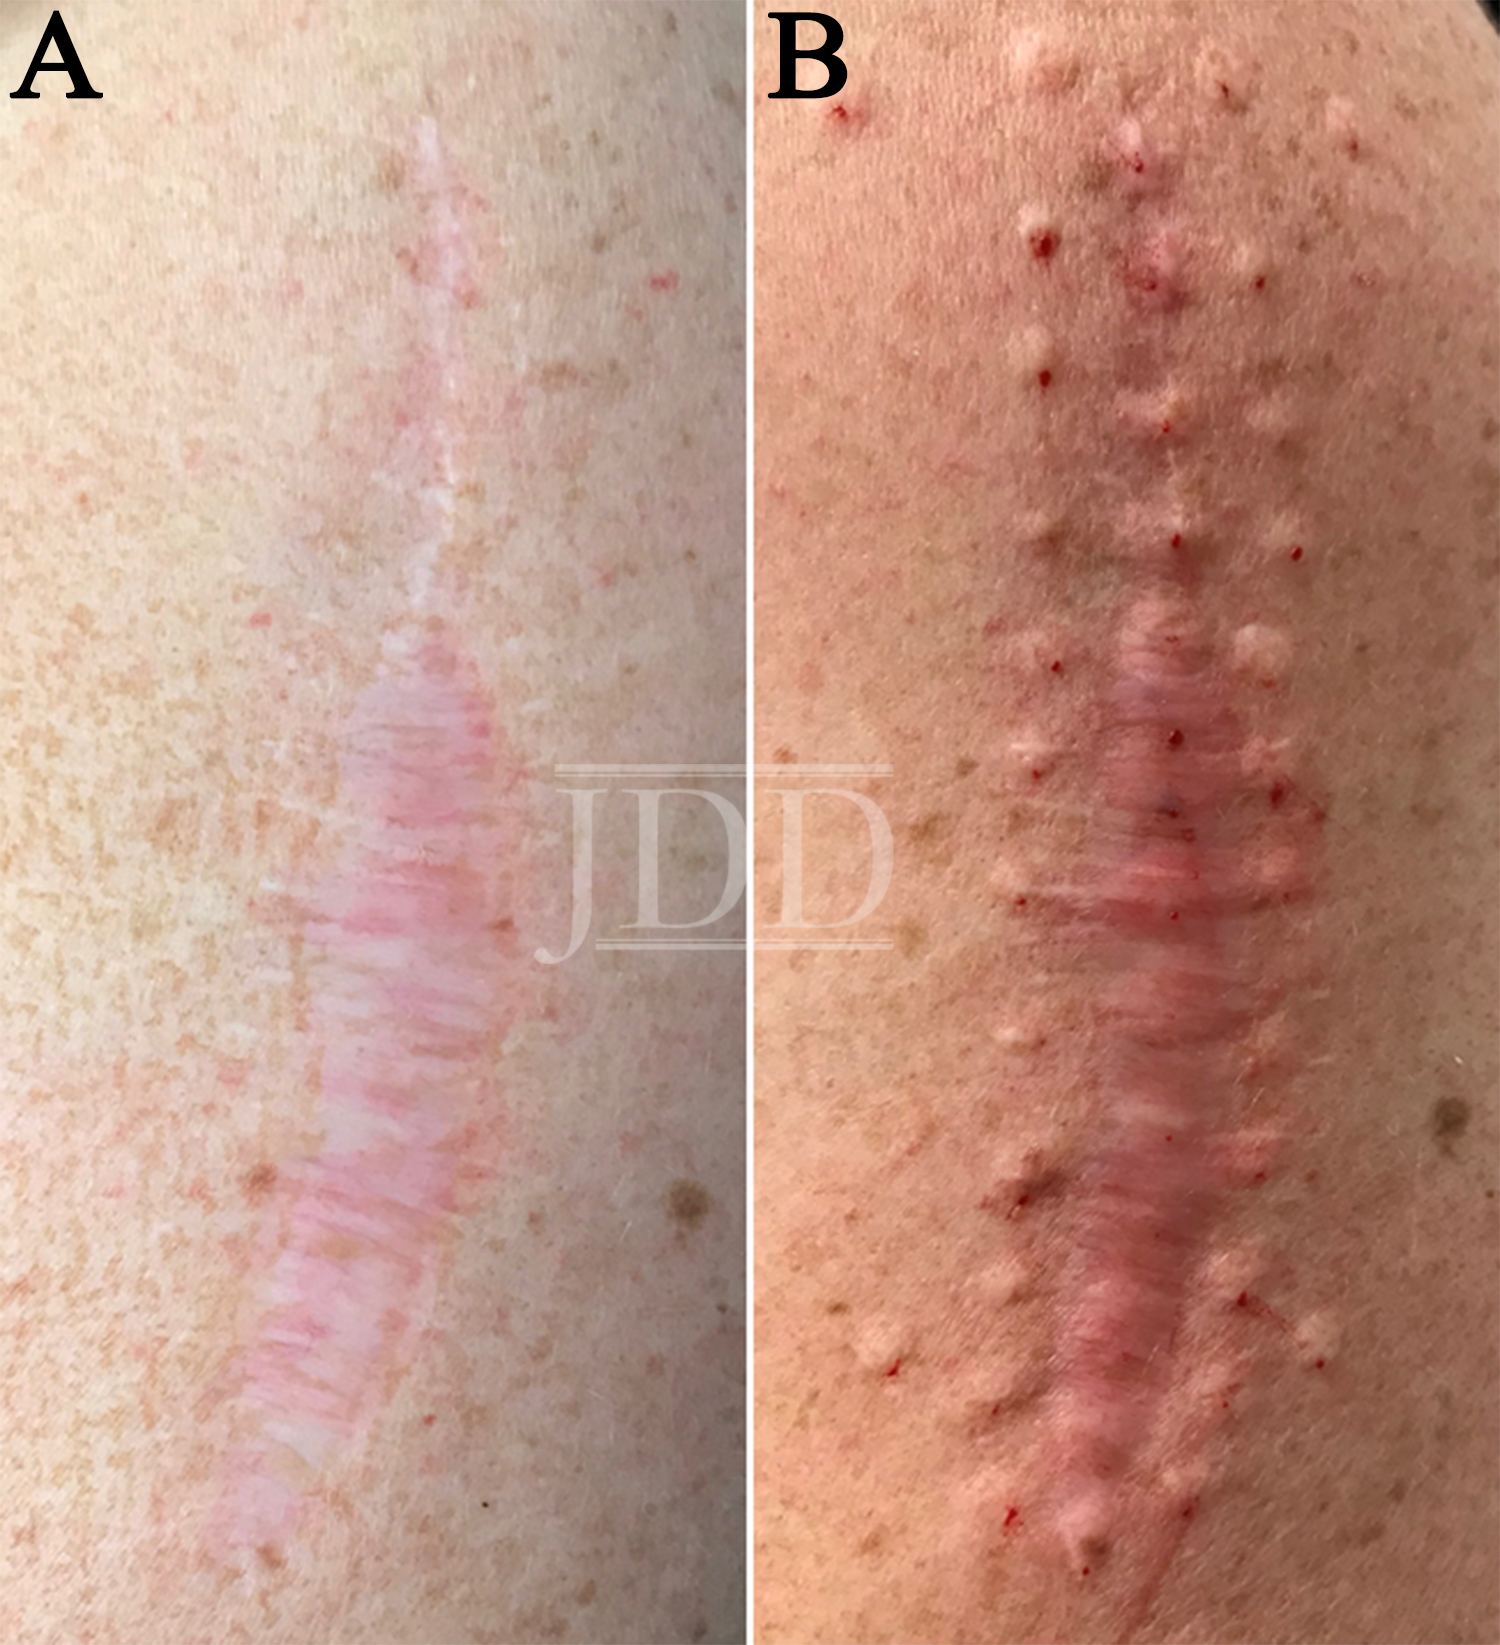 Botulinum Toxin for scar pain